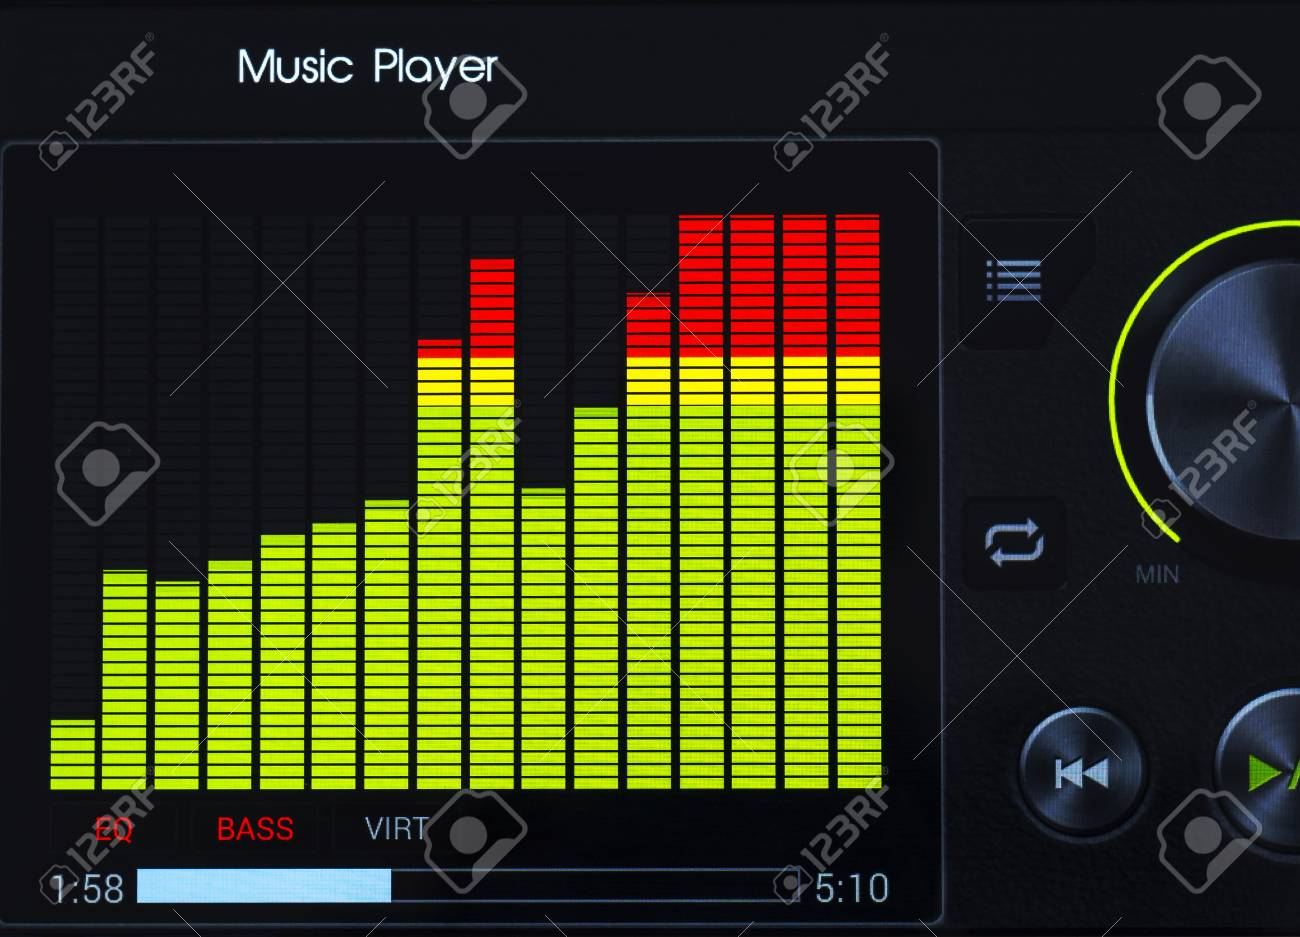 Close-up of color graphic equalizer of music player